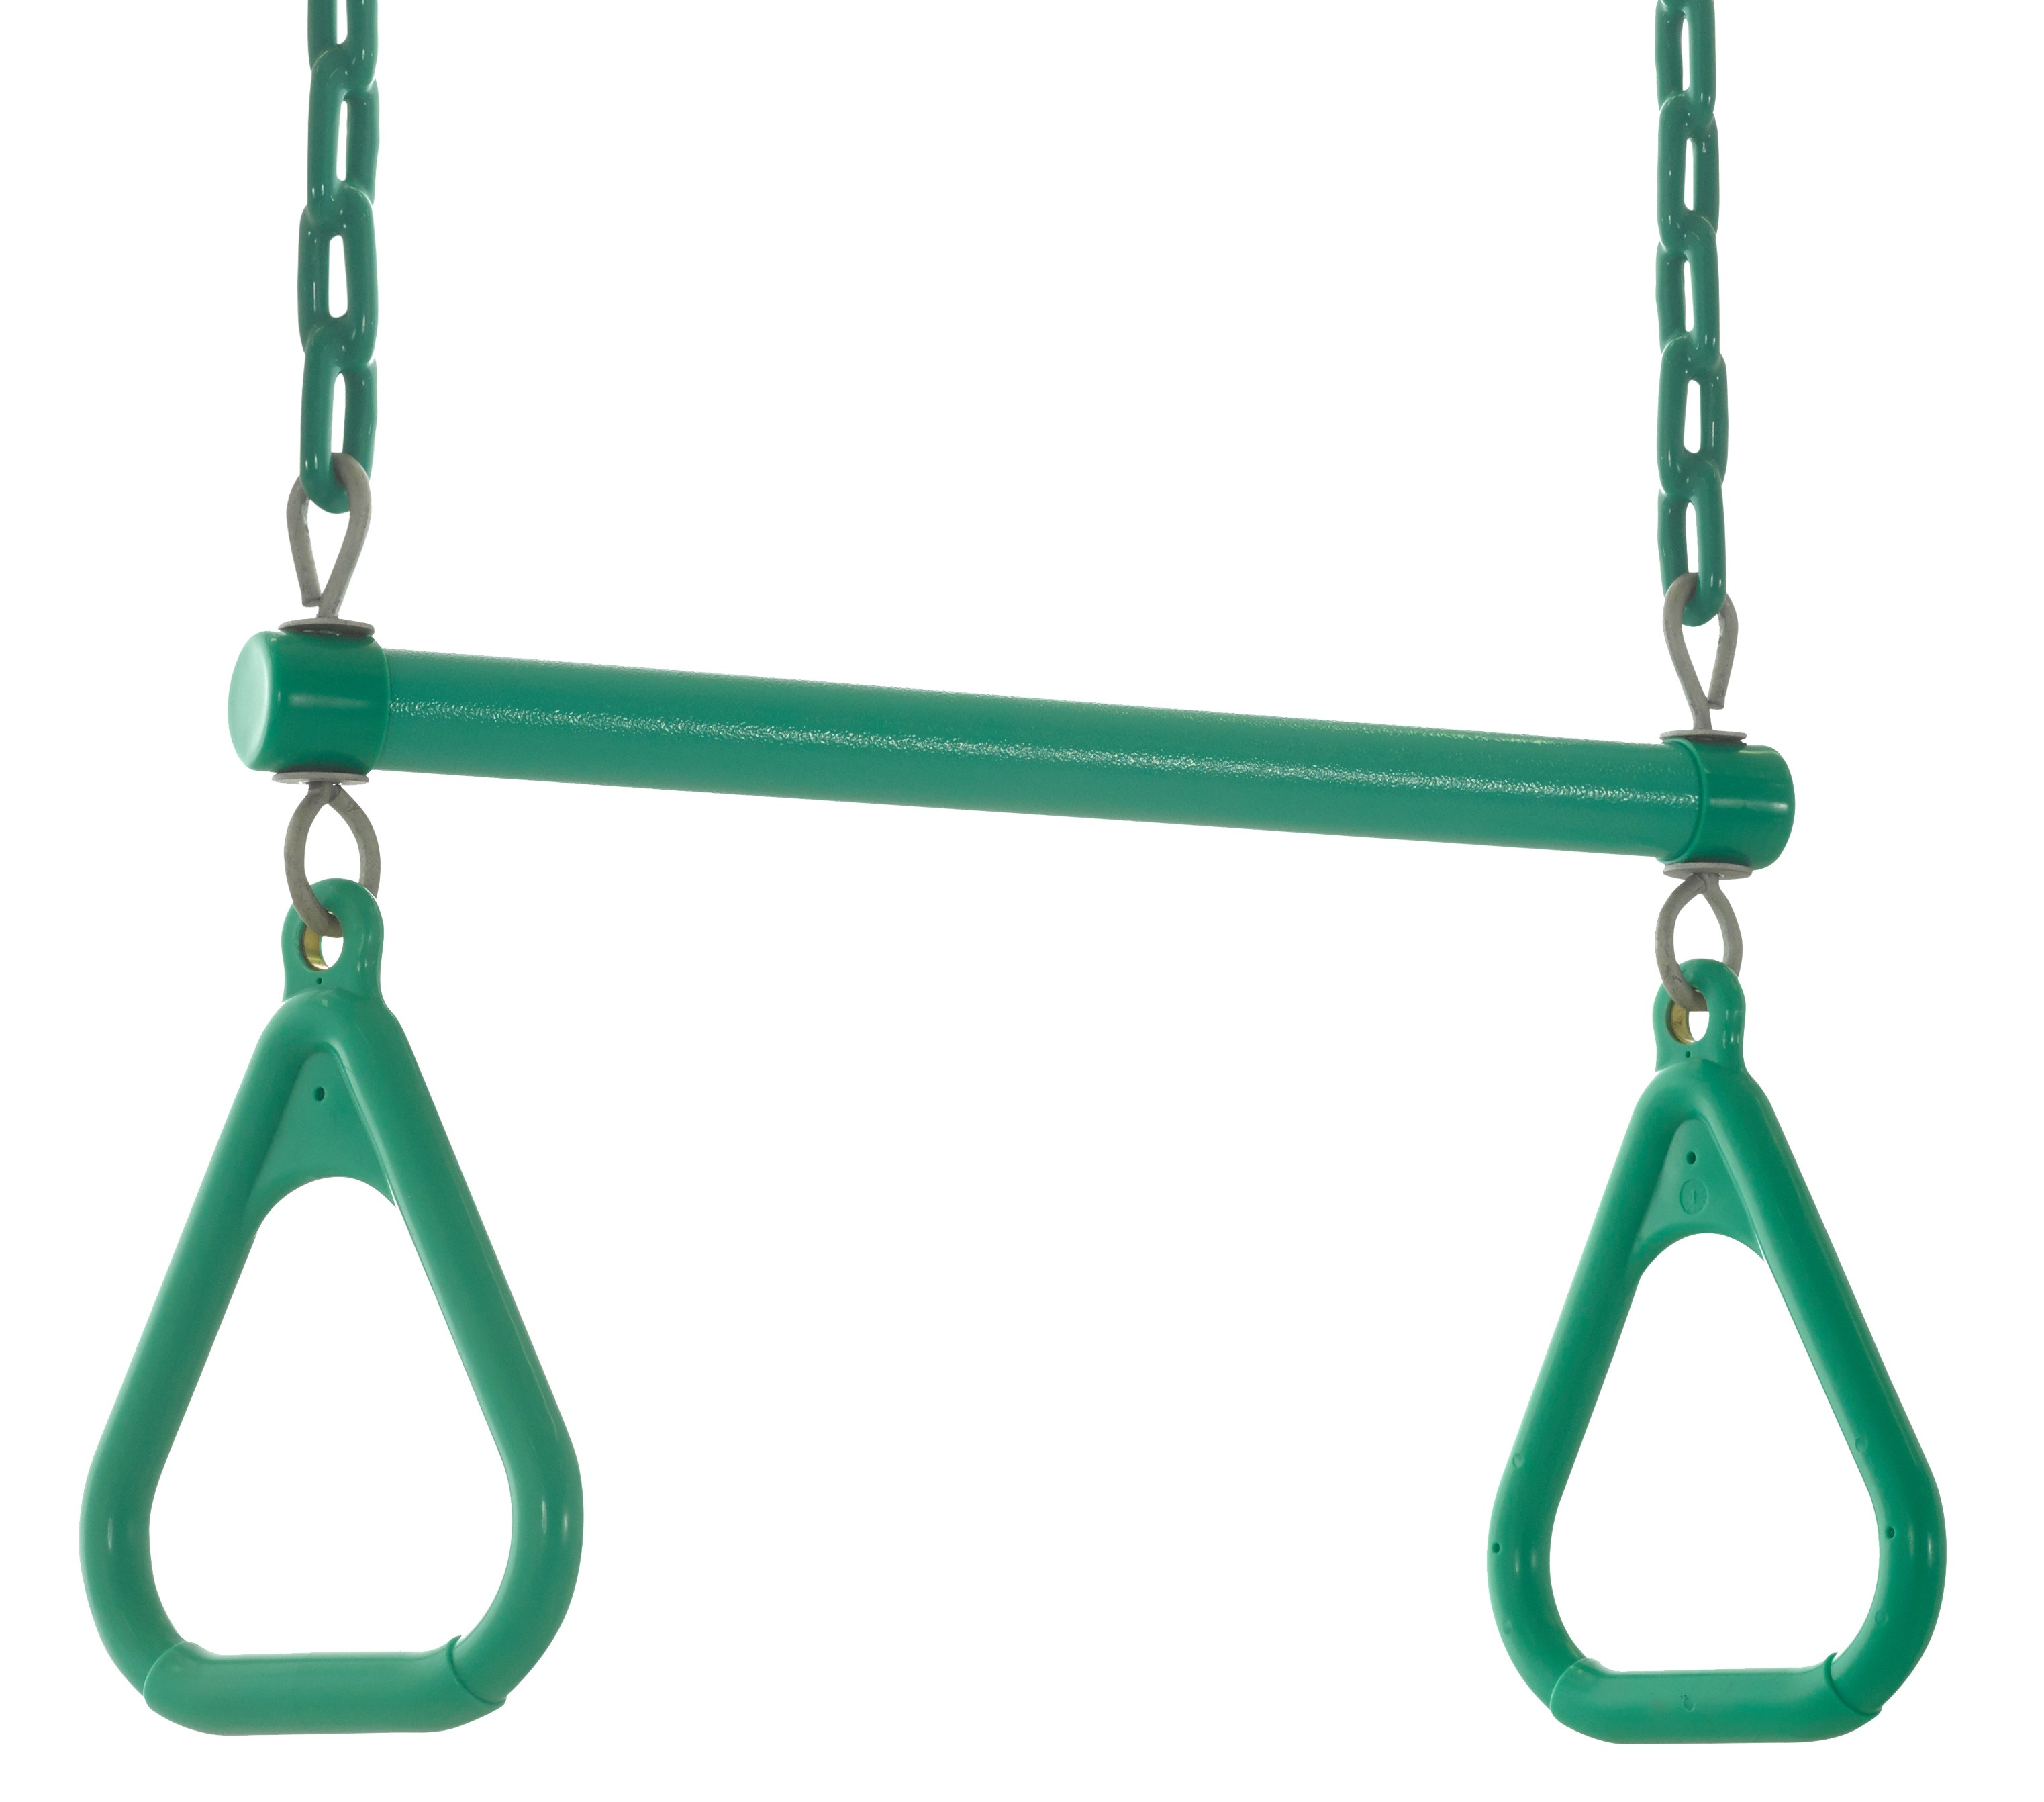 Swingan - Trapeze Swing Bar - Vinyl Coated Chain - Fully Assembled - Green